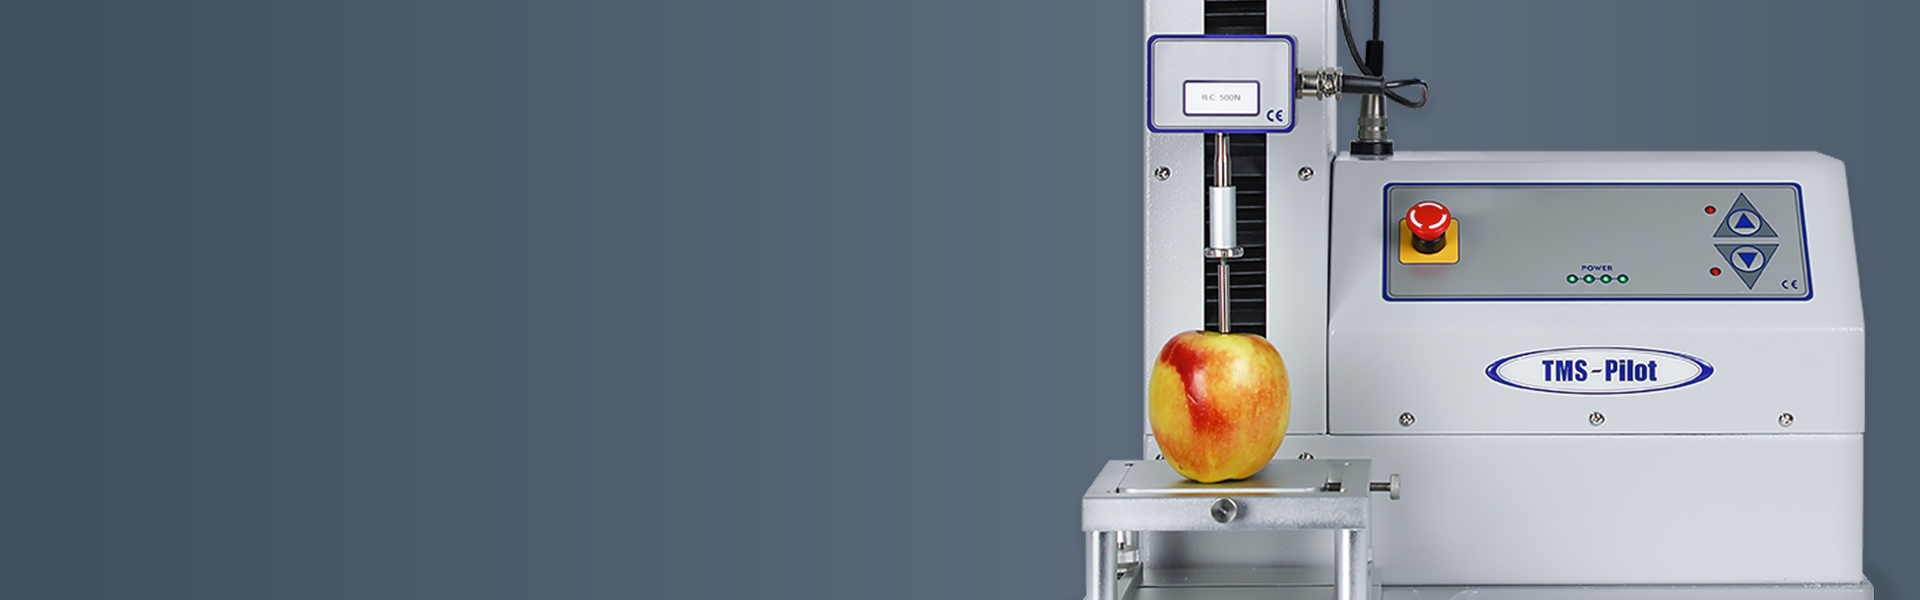 How does a texture analyzer work? Texture measurement system testing apple texture